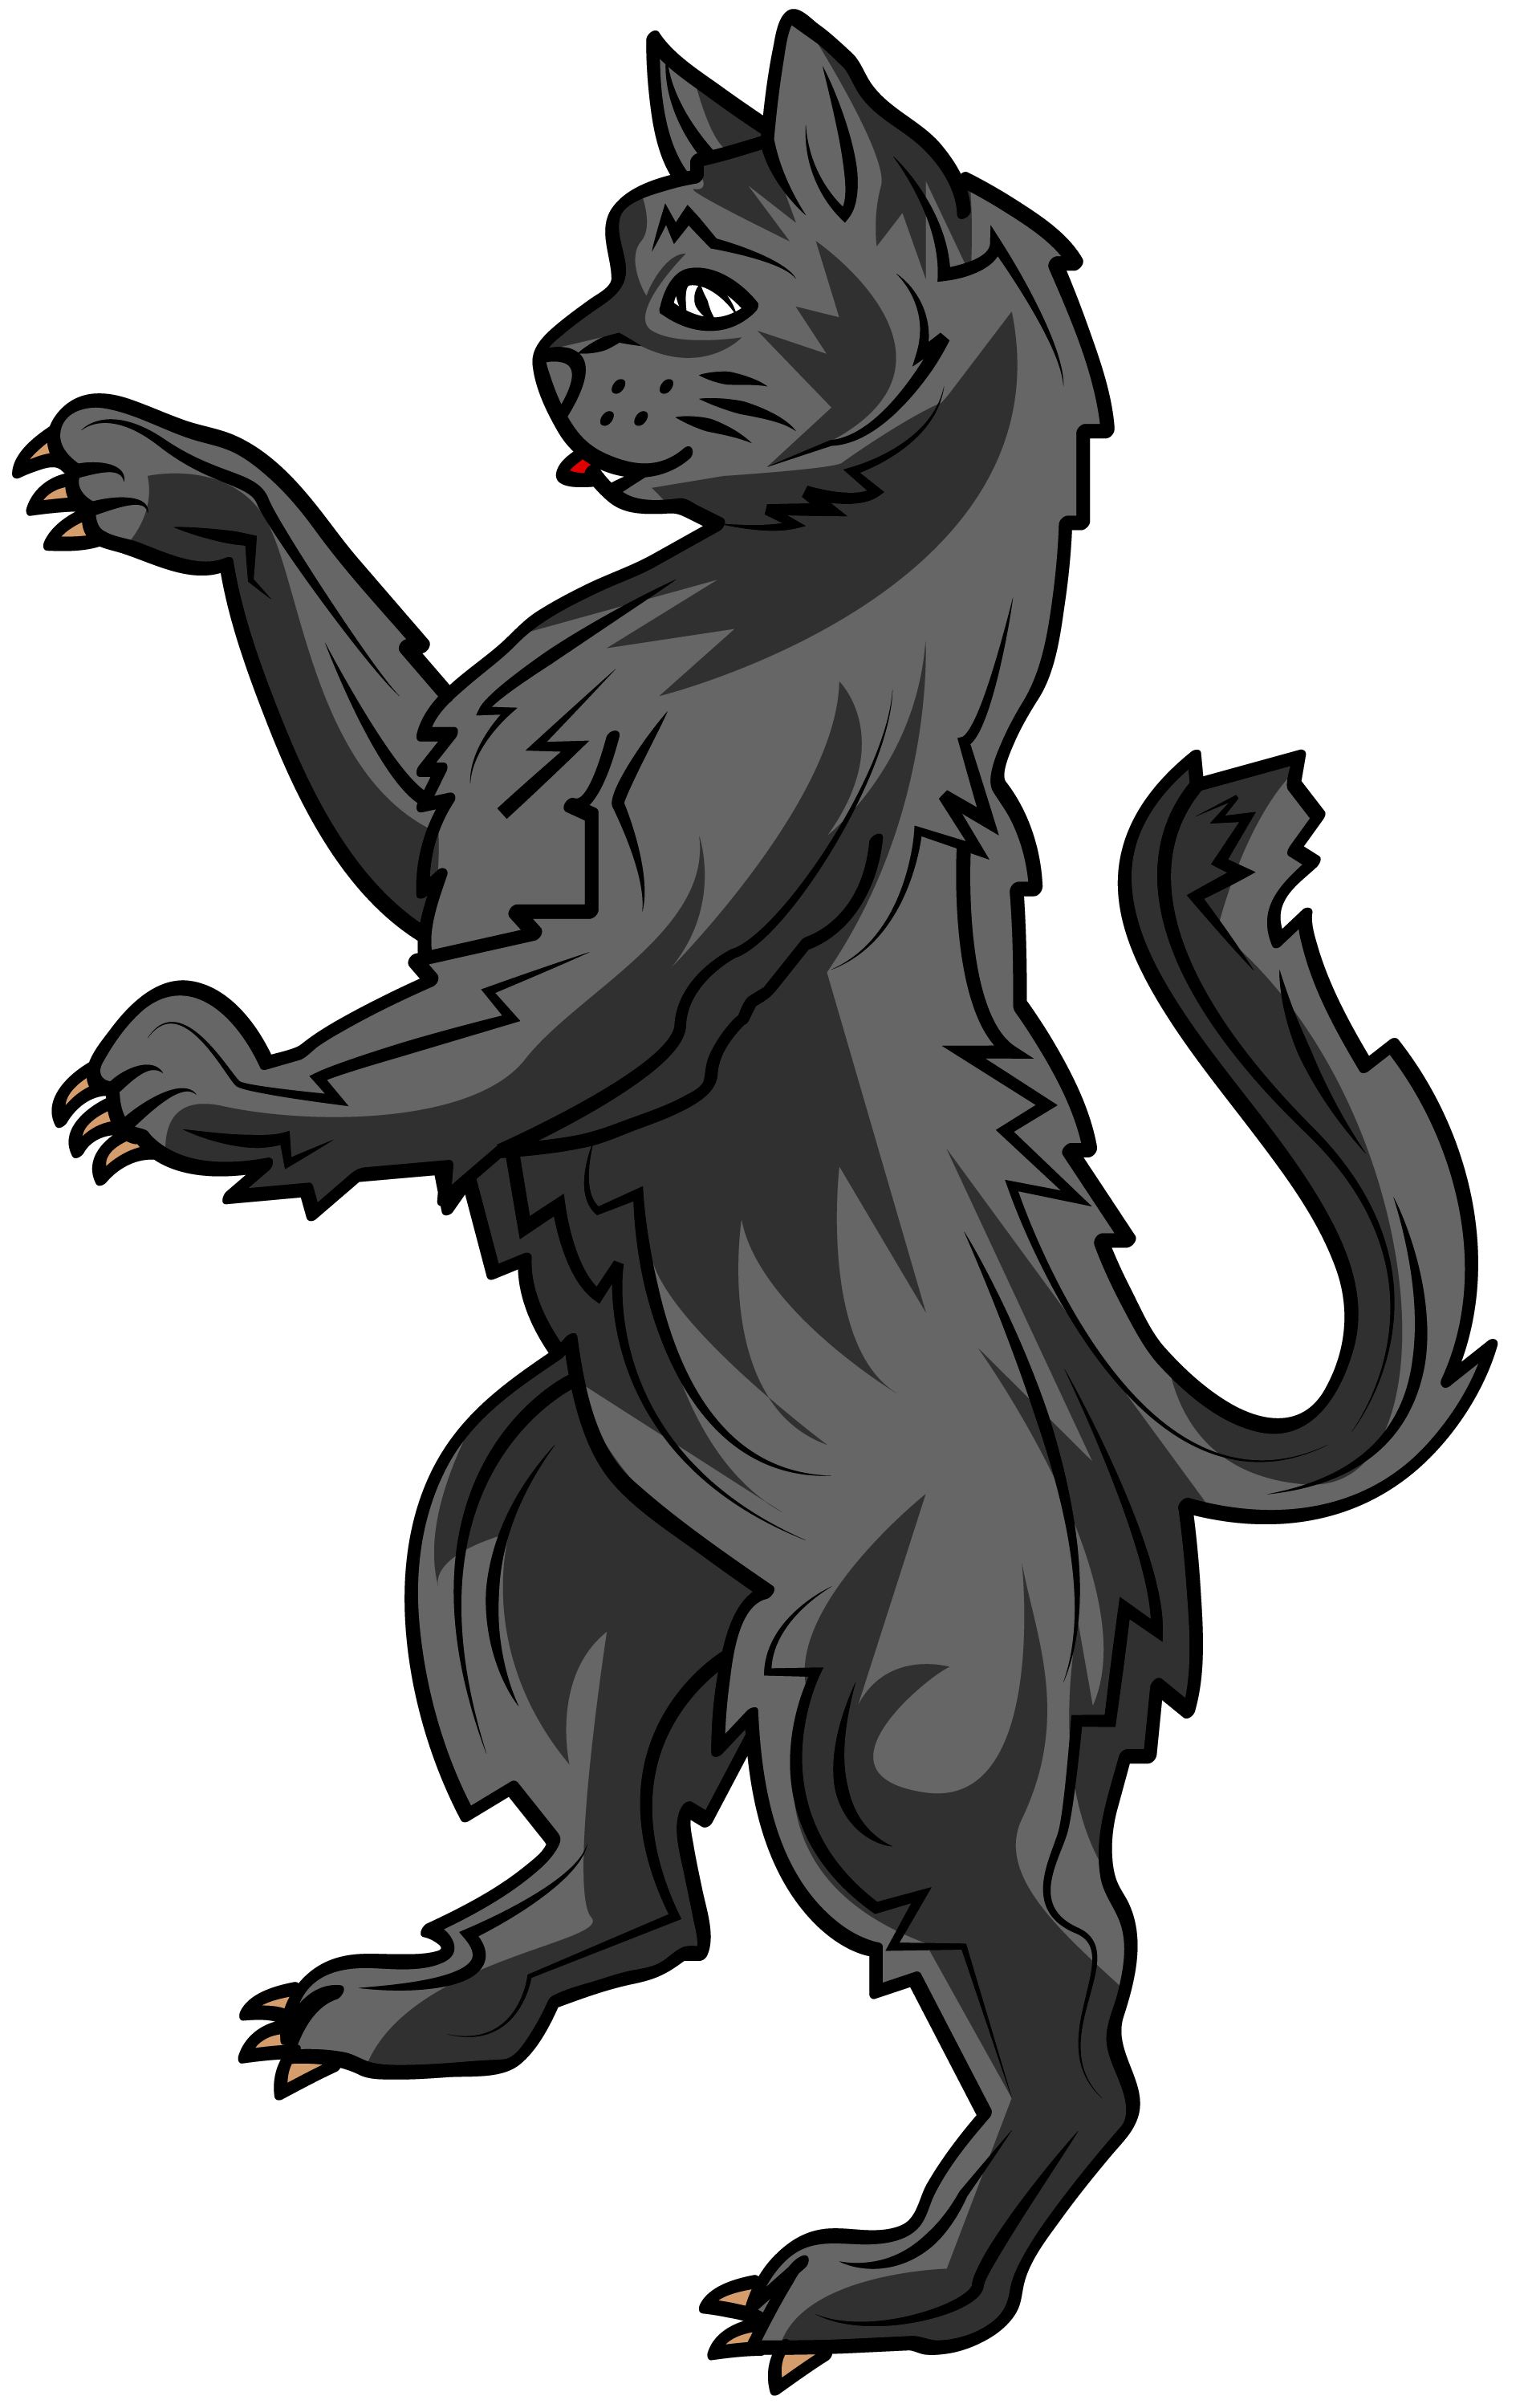 Seated cat clipart clip art download the cat in heraldry is a symbol of liberty, watchfulness, vigilance ... clip art download